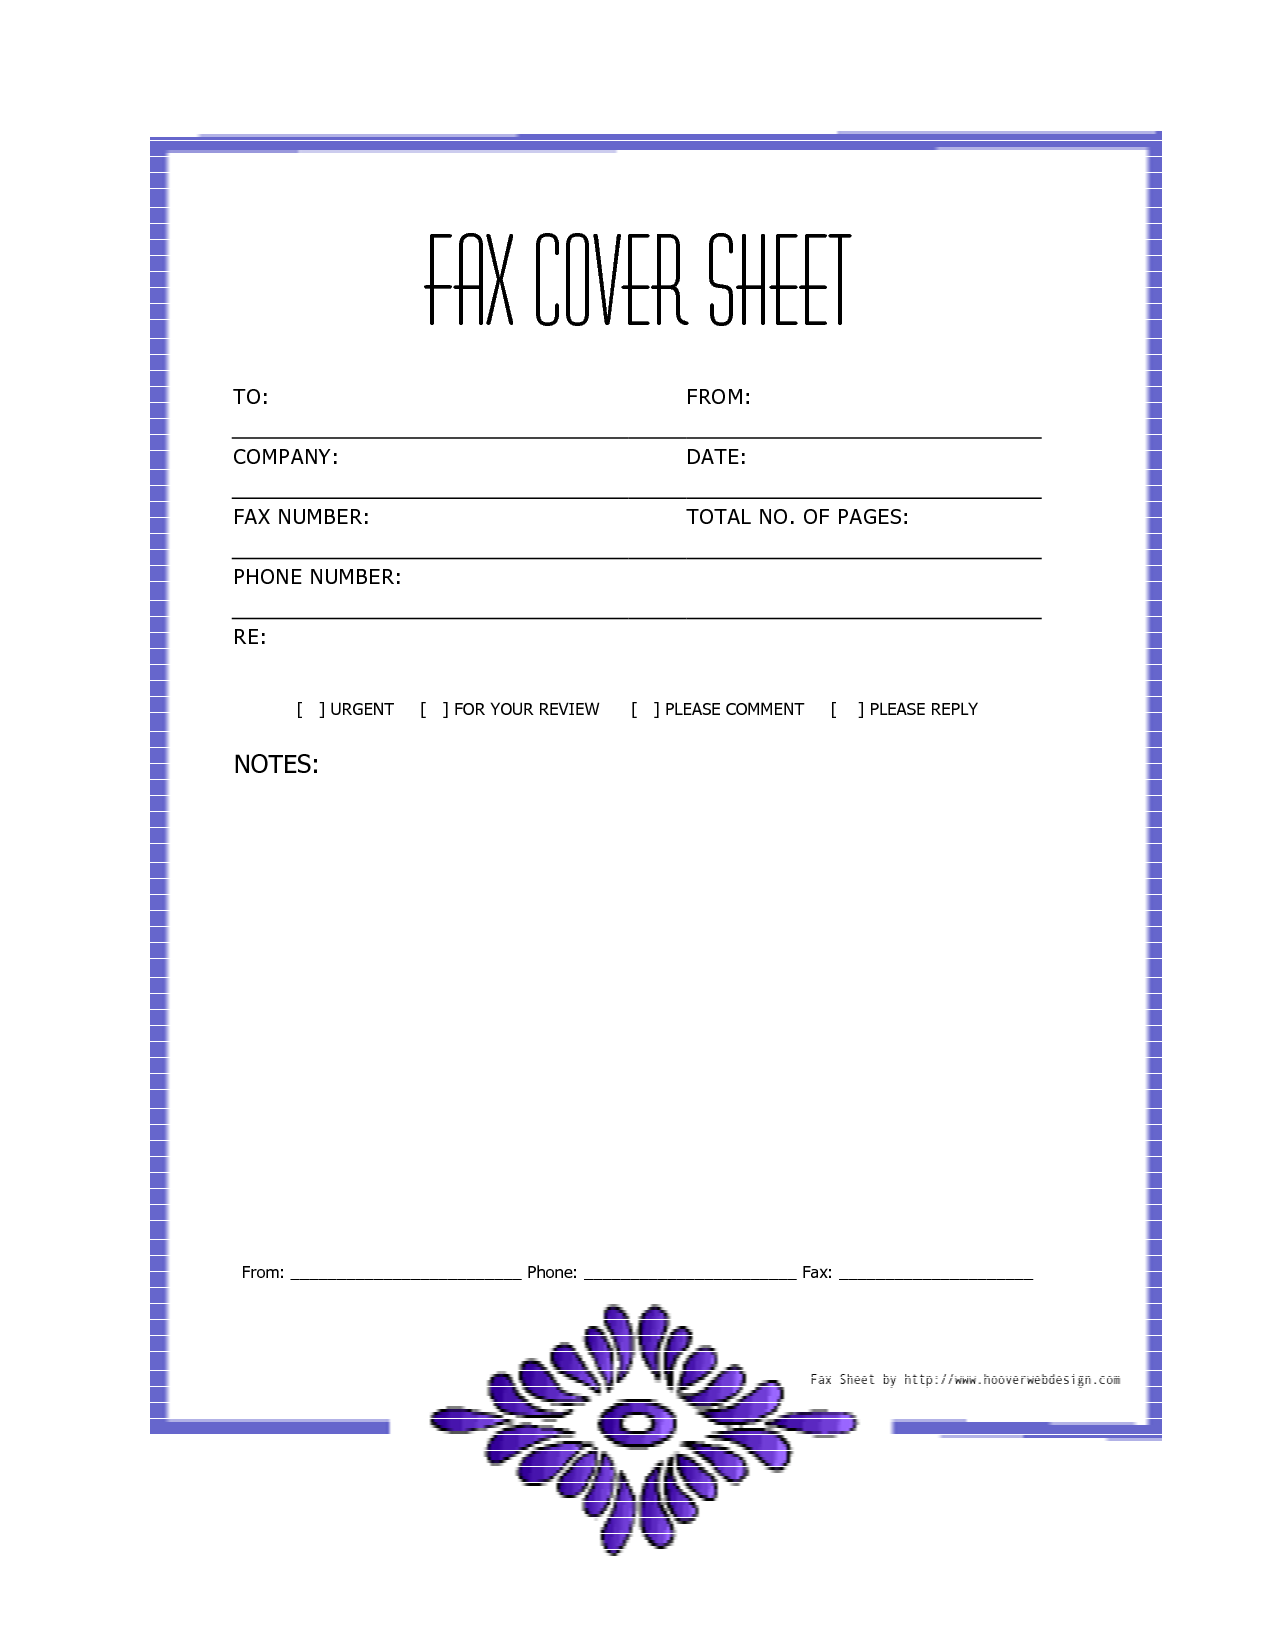 Free Downloads Fax Covers Sheets | Free Printable Fax Cover Sheet Template  Elegant   Download As  Fax Templates In Word